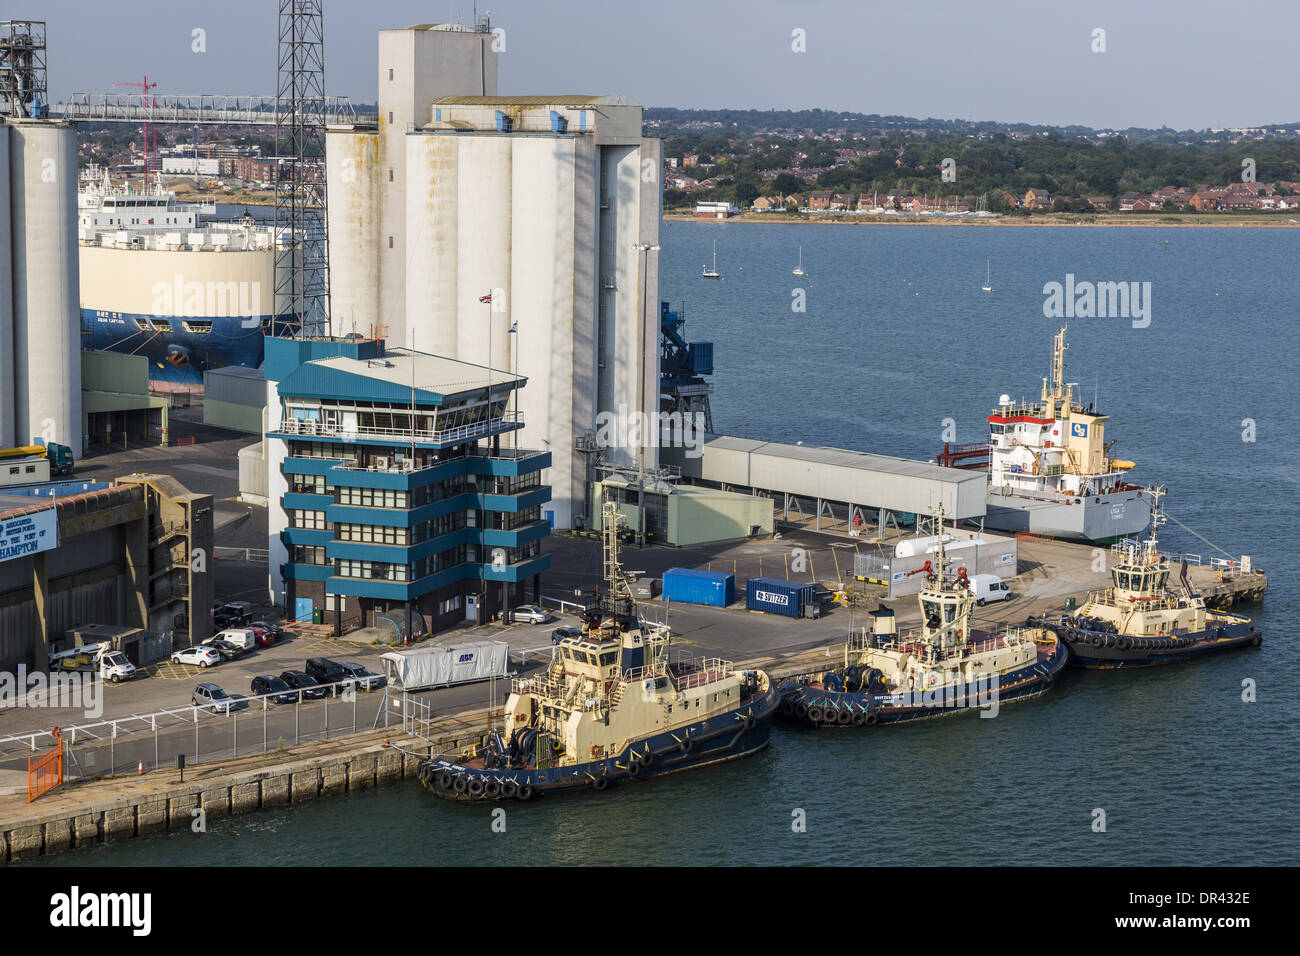 Tugs alongside dockhead, Southampton. Home to Port of Southampton Vessel Traffic Services in the blue building - Stock Image